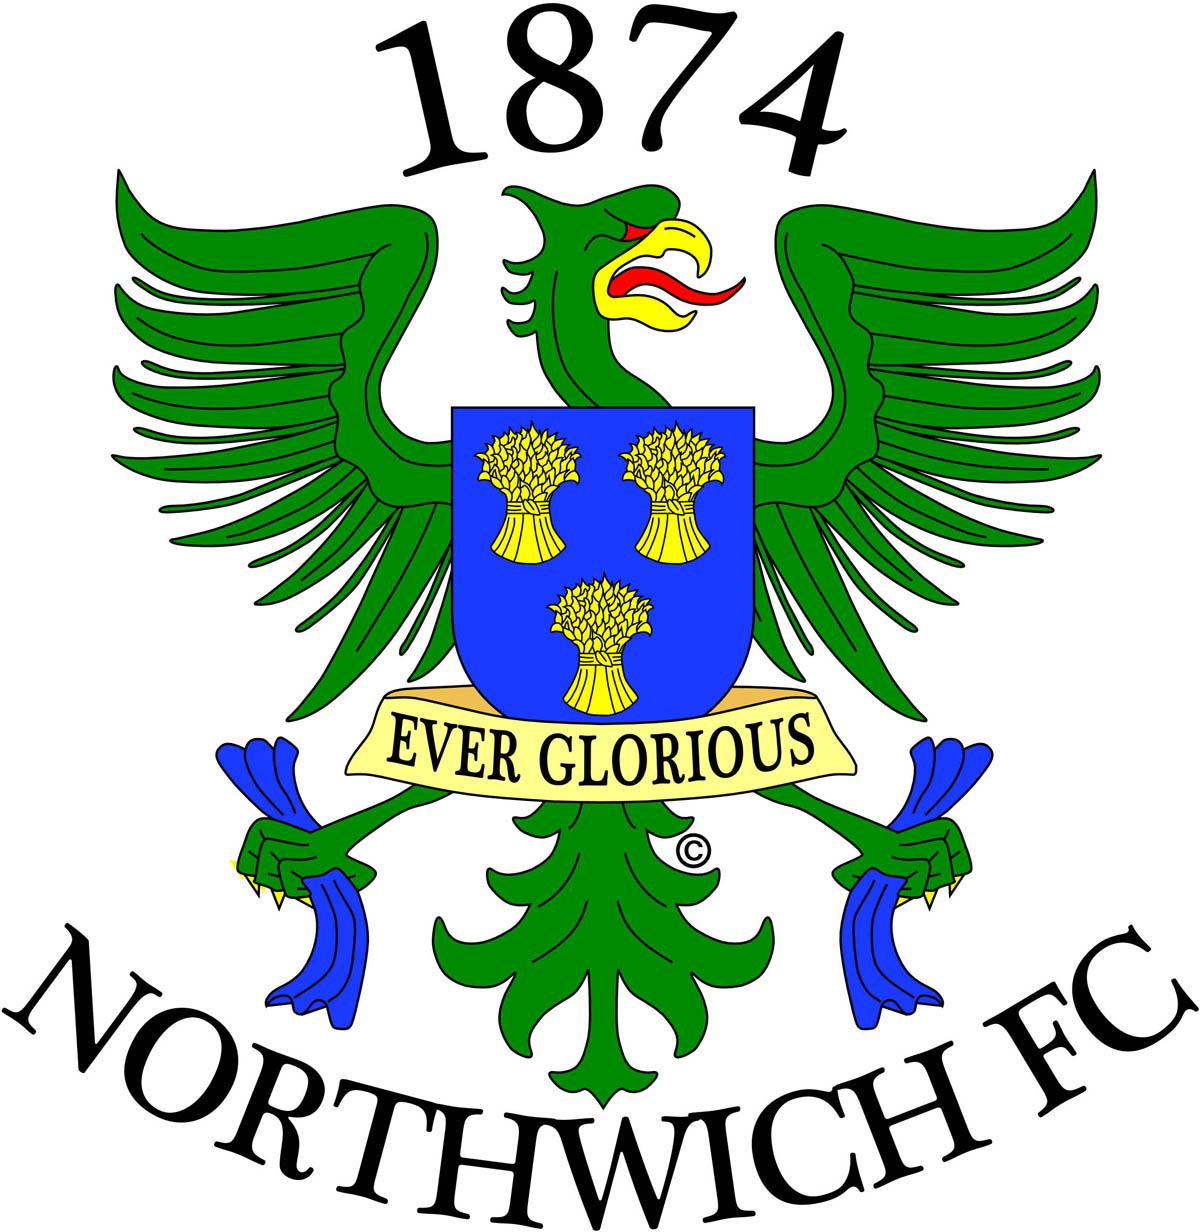 Wayne Goodison has joined the management team at 1874 Northwich while Stuart Tulloch recovers from injury